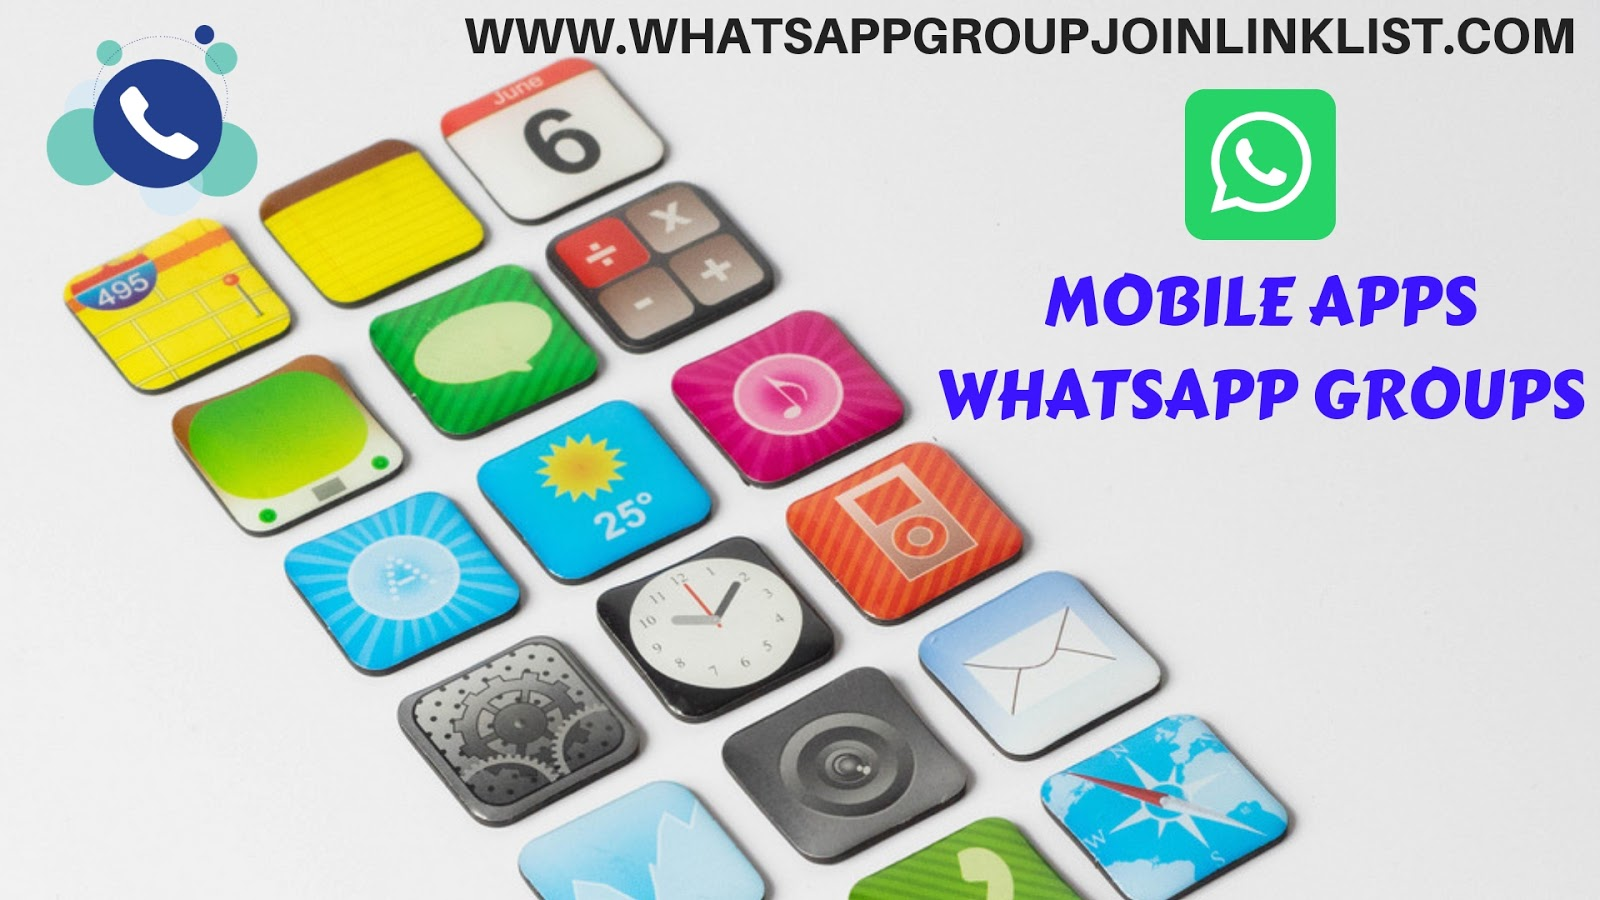 Mobile Apps WhatsApp Group Join Link List